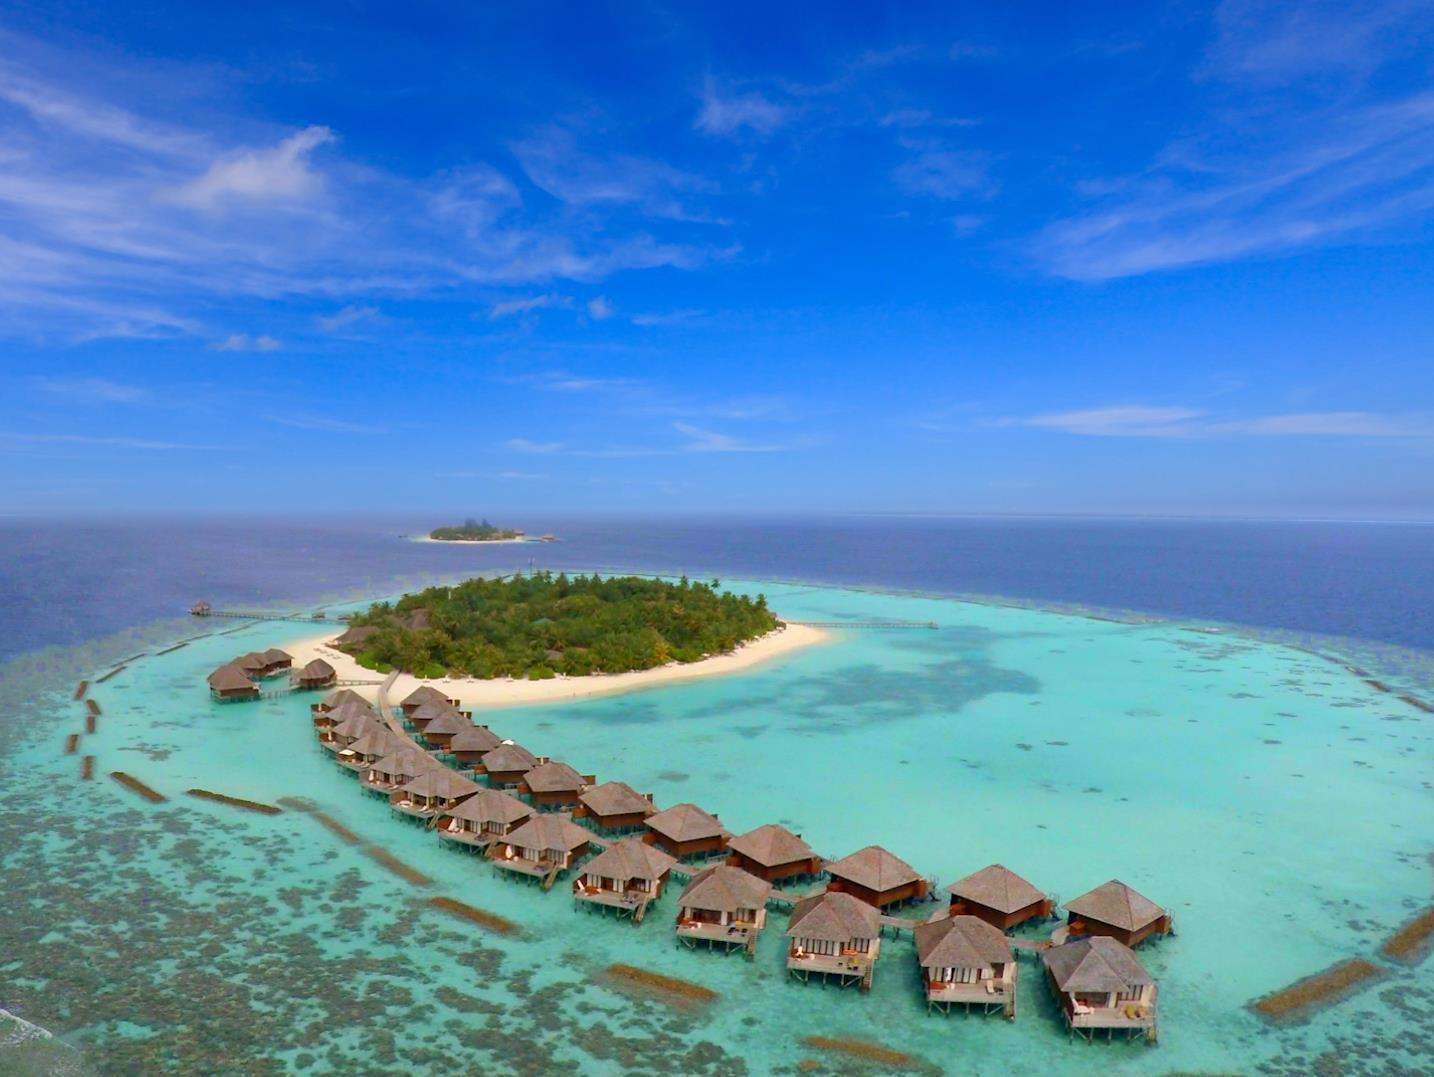 Vakarufalhi Island Resort Maldives Islands - Beach View